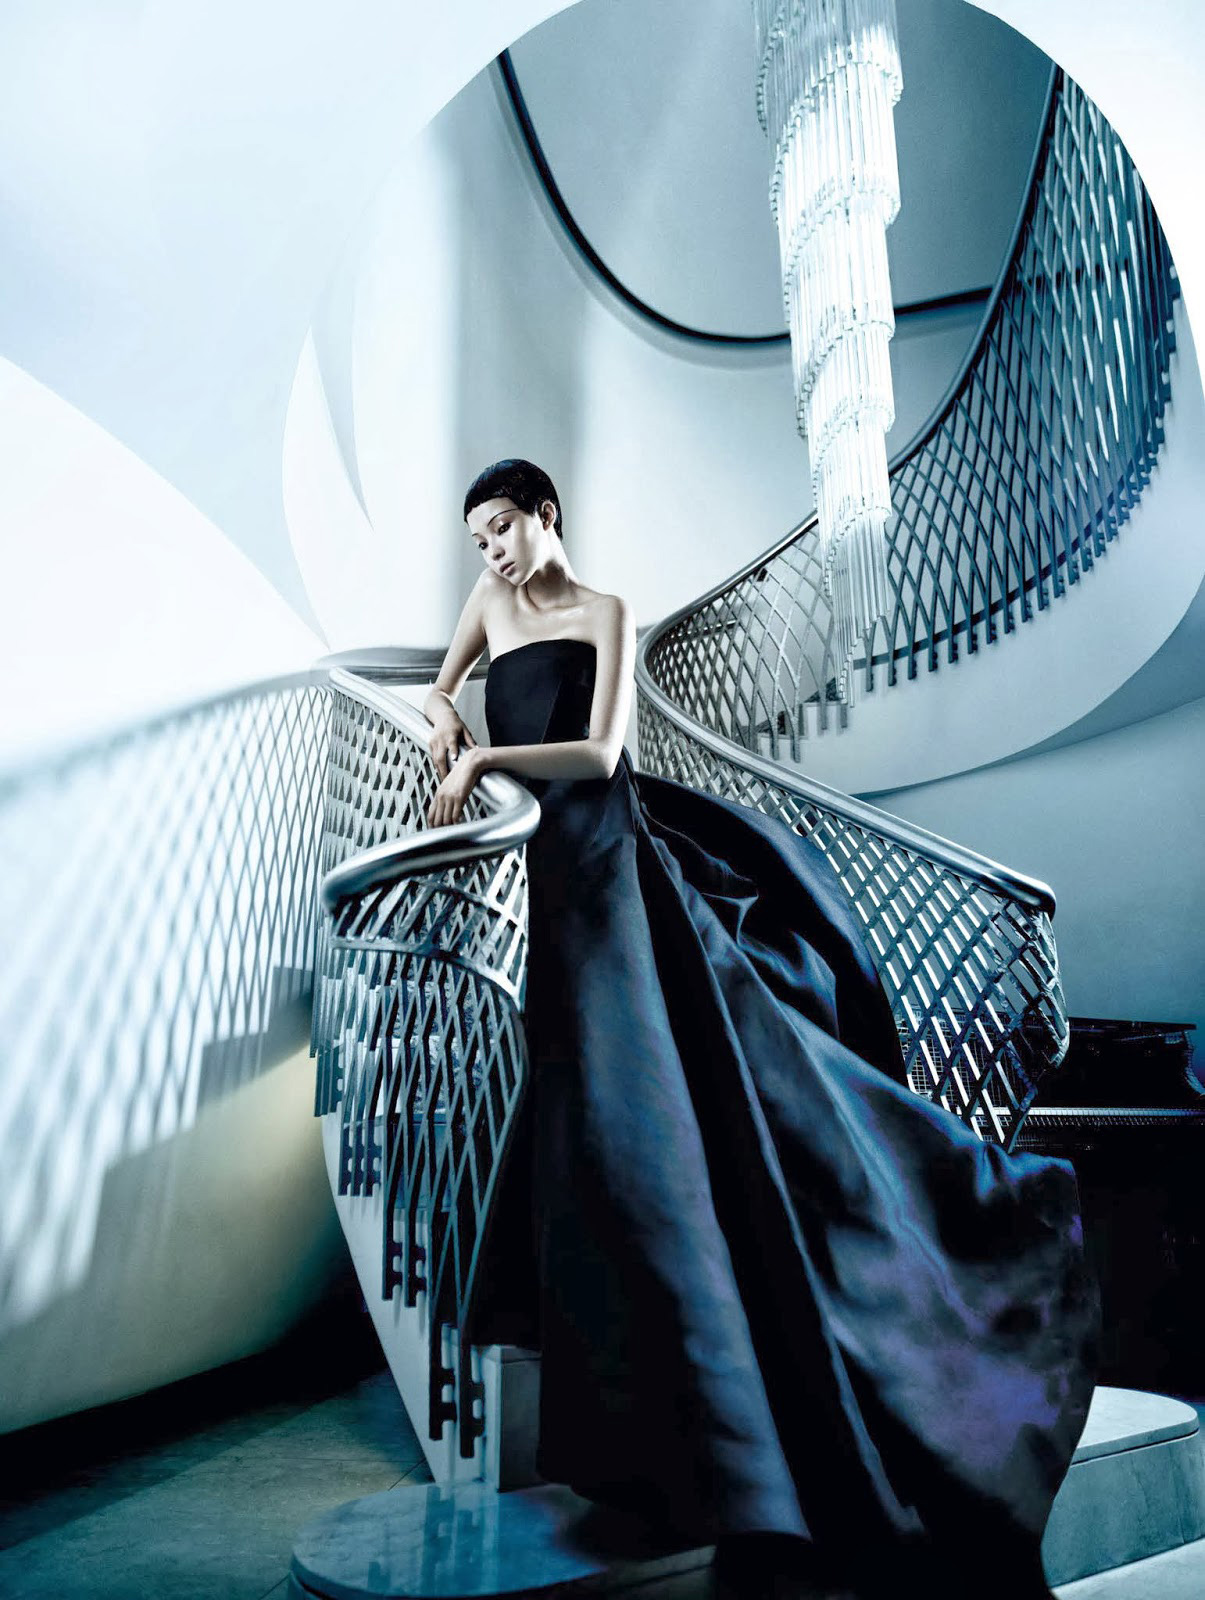 The Winter Queen Vogue China December 2013. Photo by Mario Testino   Yellowtrace